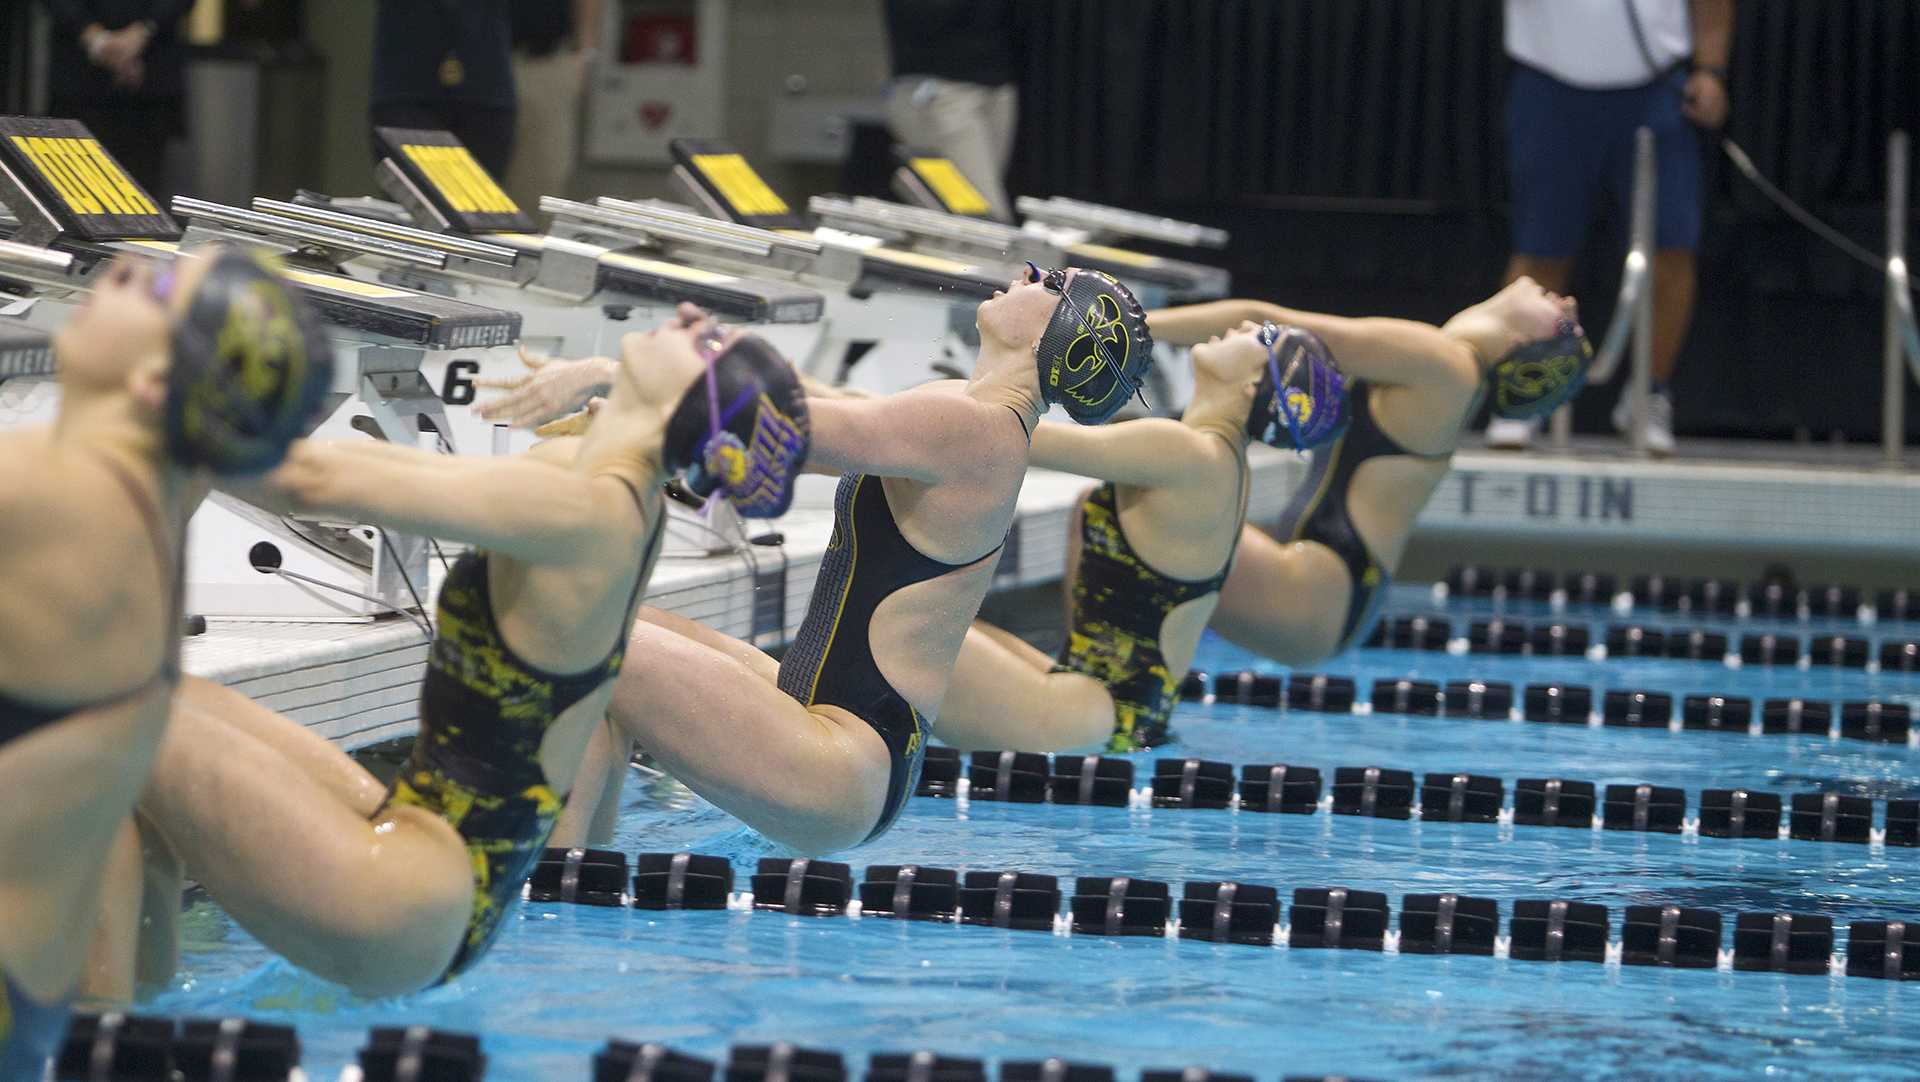 Swimmers dive into the pool for the Women's 50-yard backstroke during a meet between University of Iowa and Western Illinois on Friday, Feb. 2, 2018 at the University Aquatic Center.